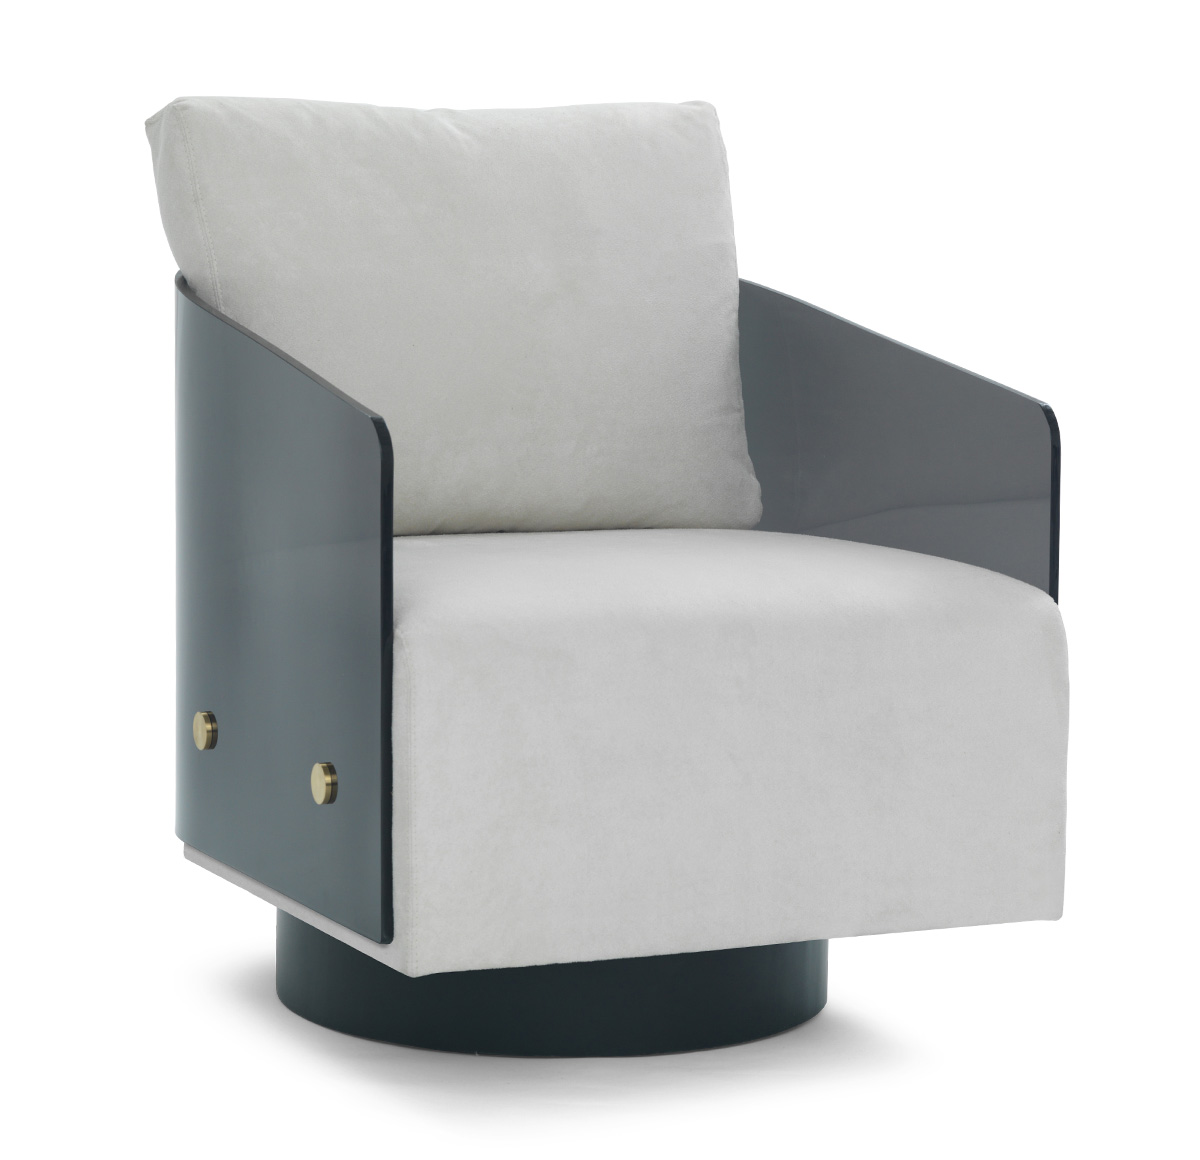 For Example The Raphael Lucite And Sheepskin Chair Or The Smokey Lucite  Swivel From The Aforementioned Mitchell U0026 Gold.